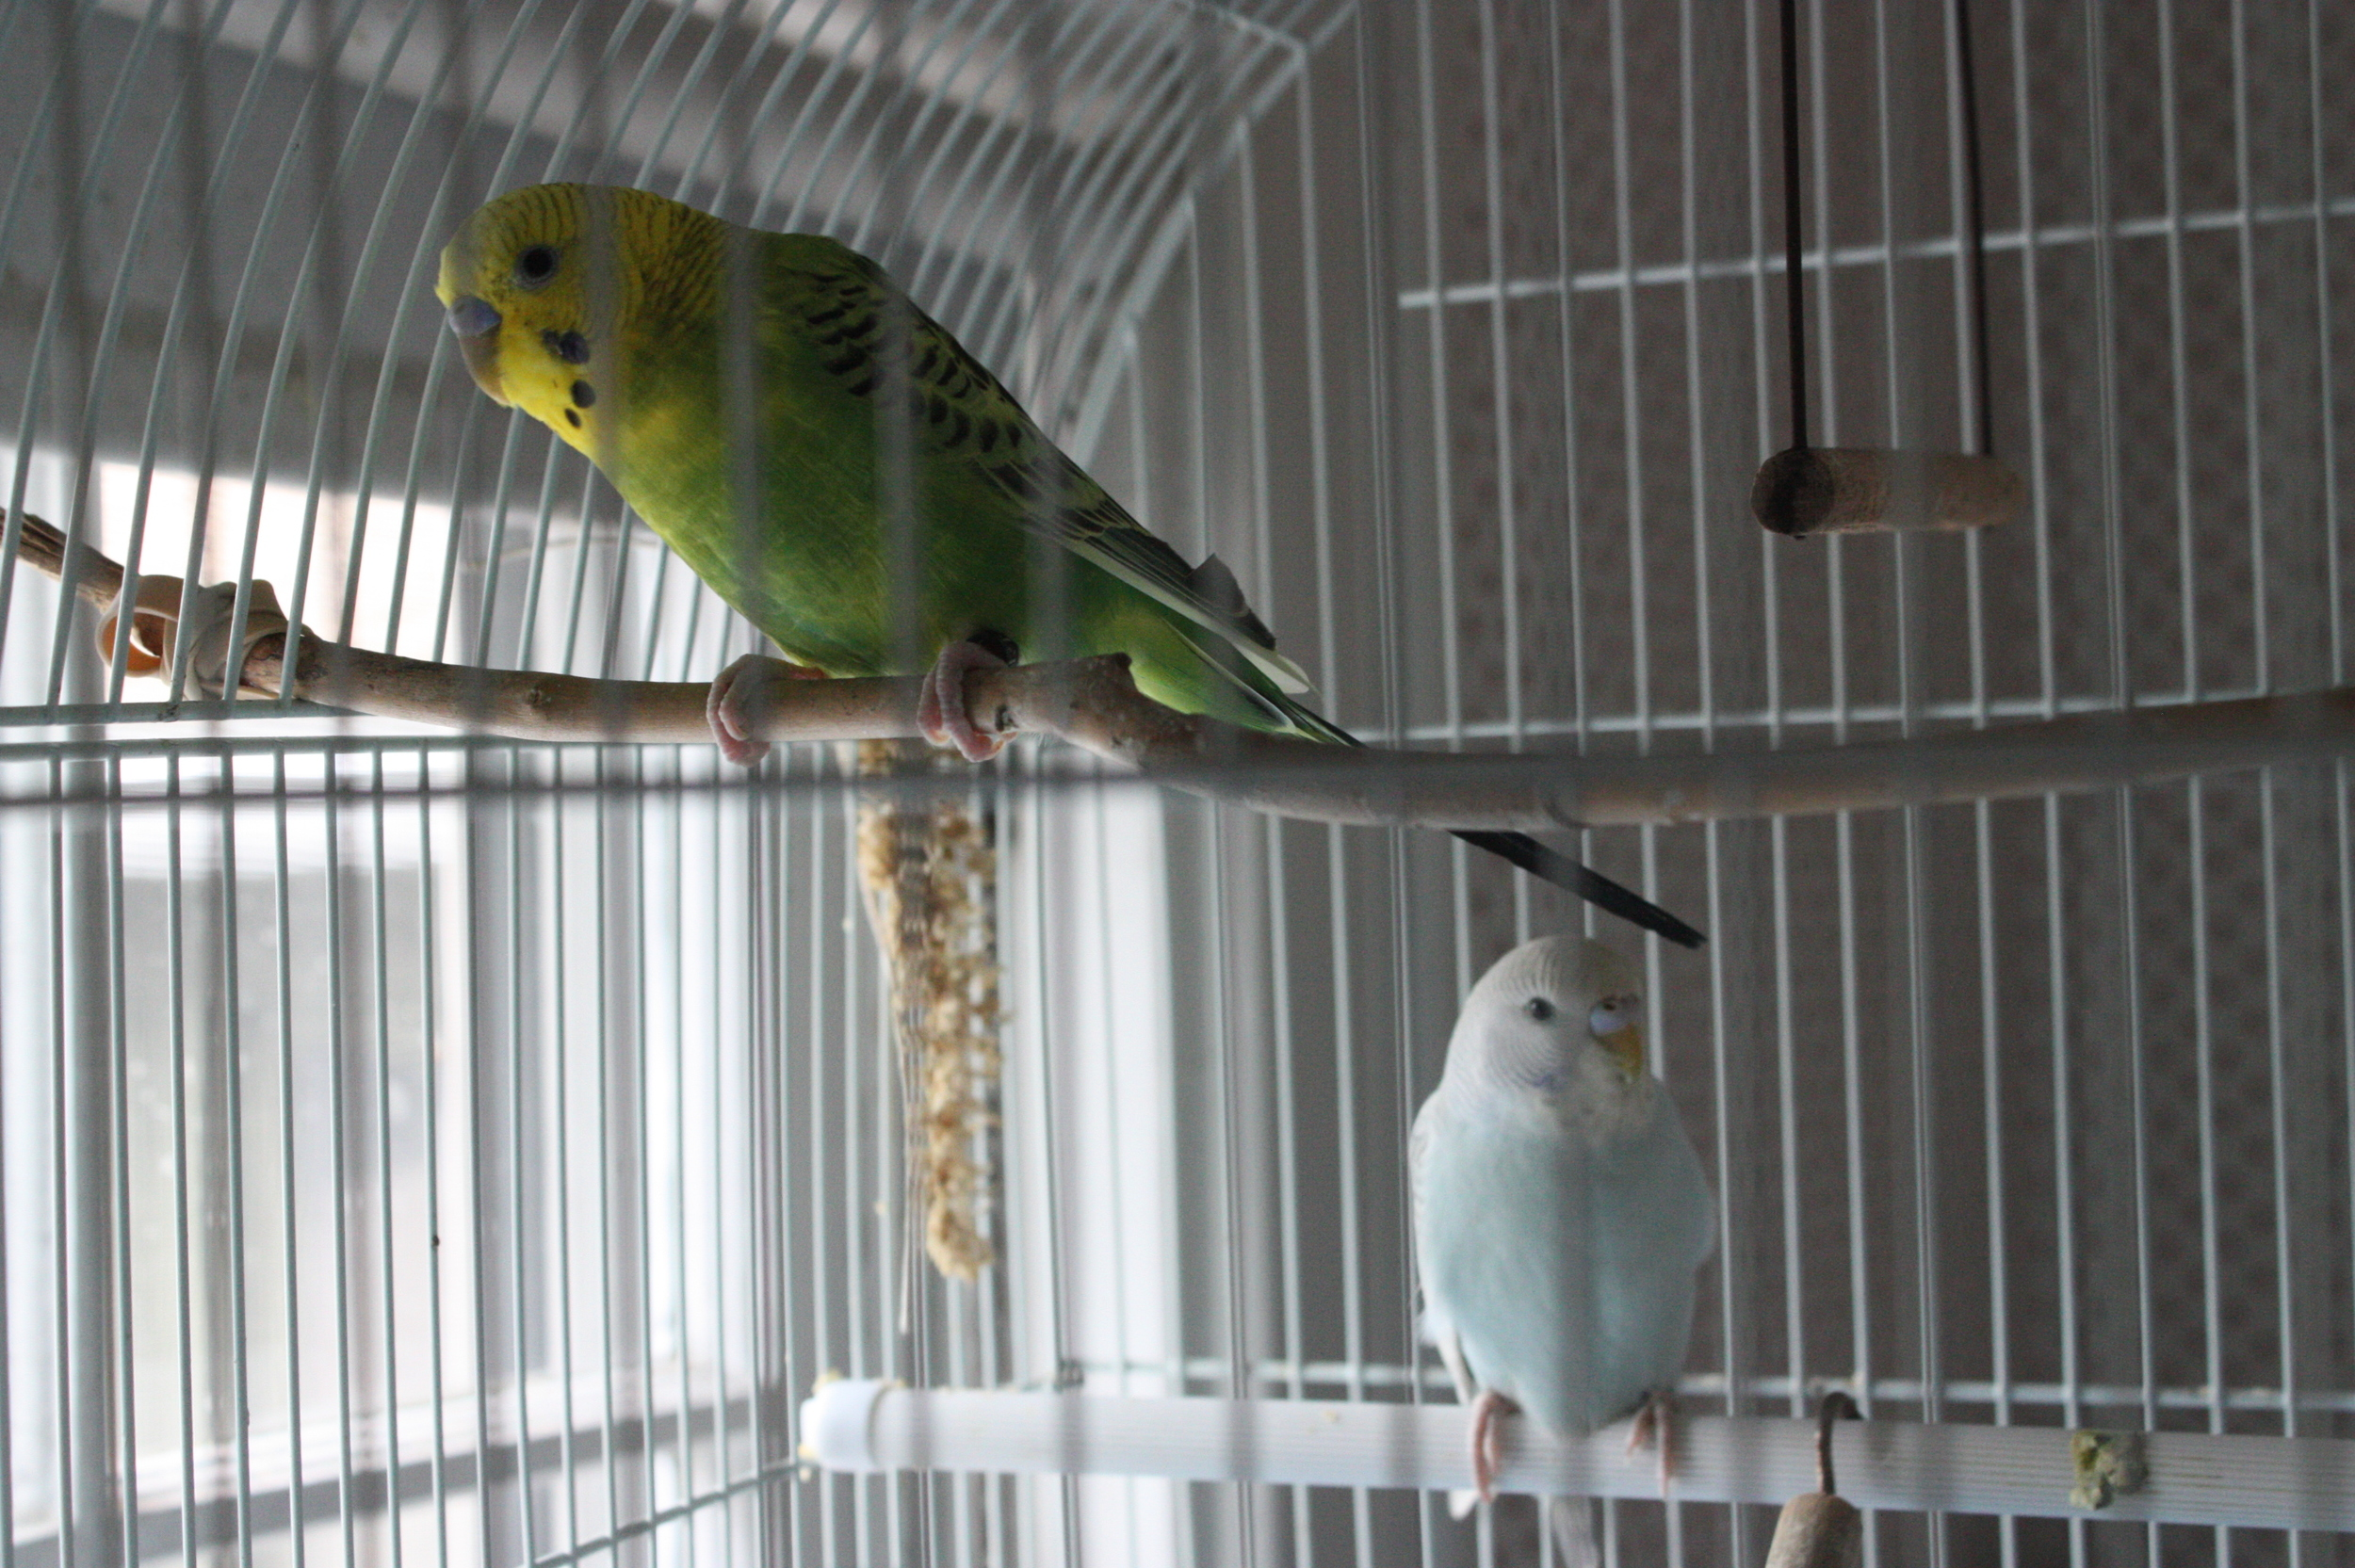 NAMING THE PARAKEETS